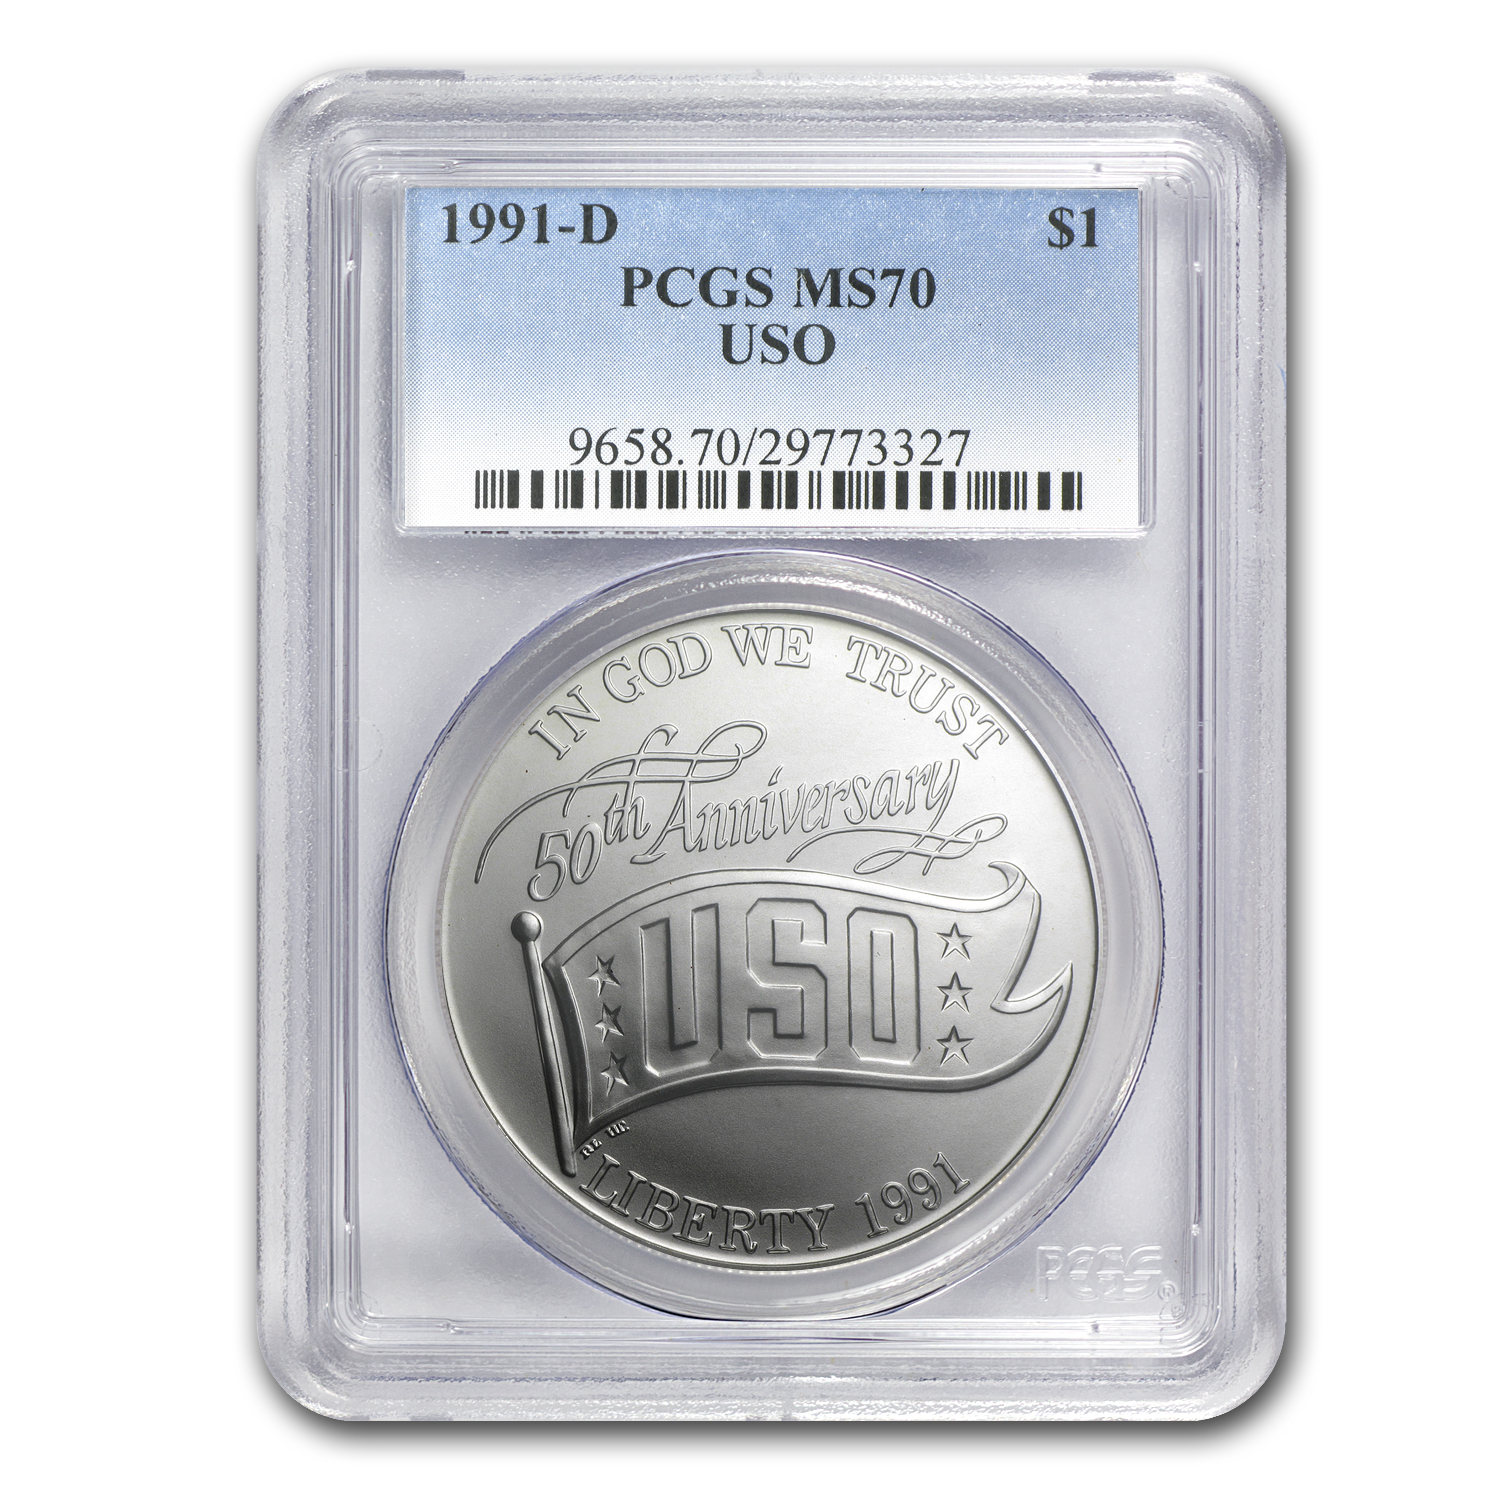 1991-D USO $1 Silver Commemorative MS-70 PCGS